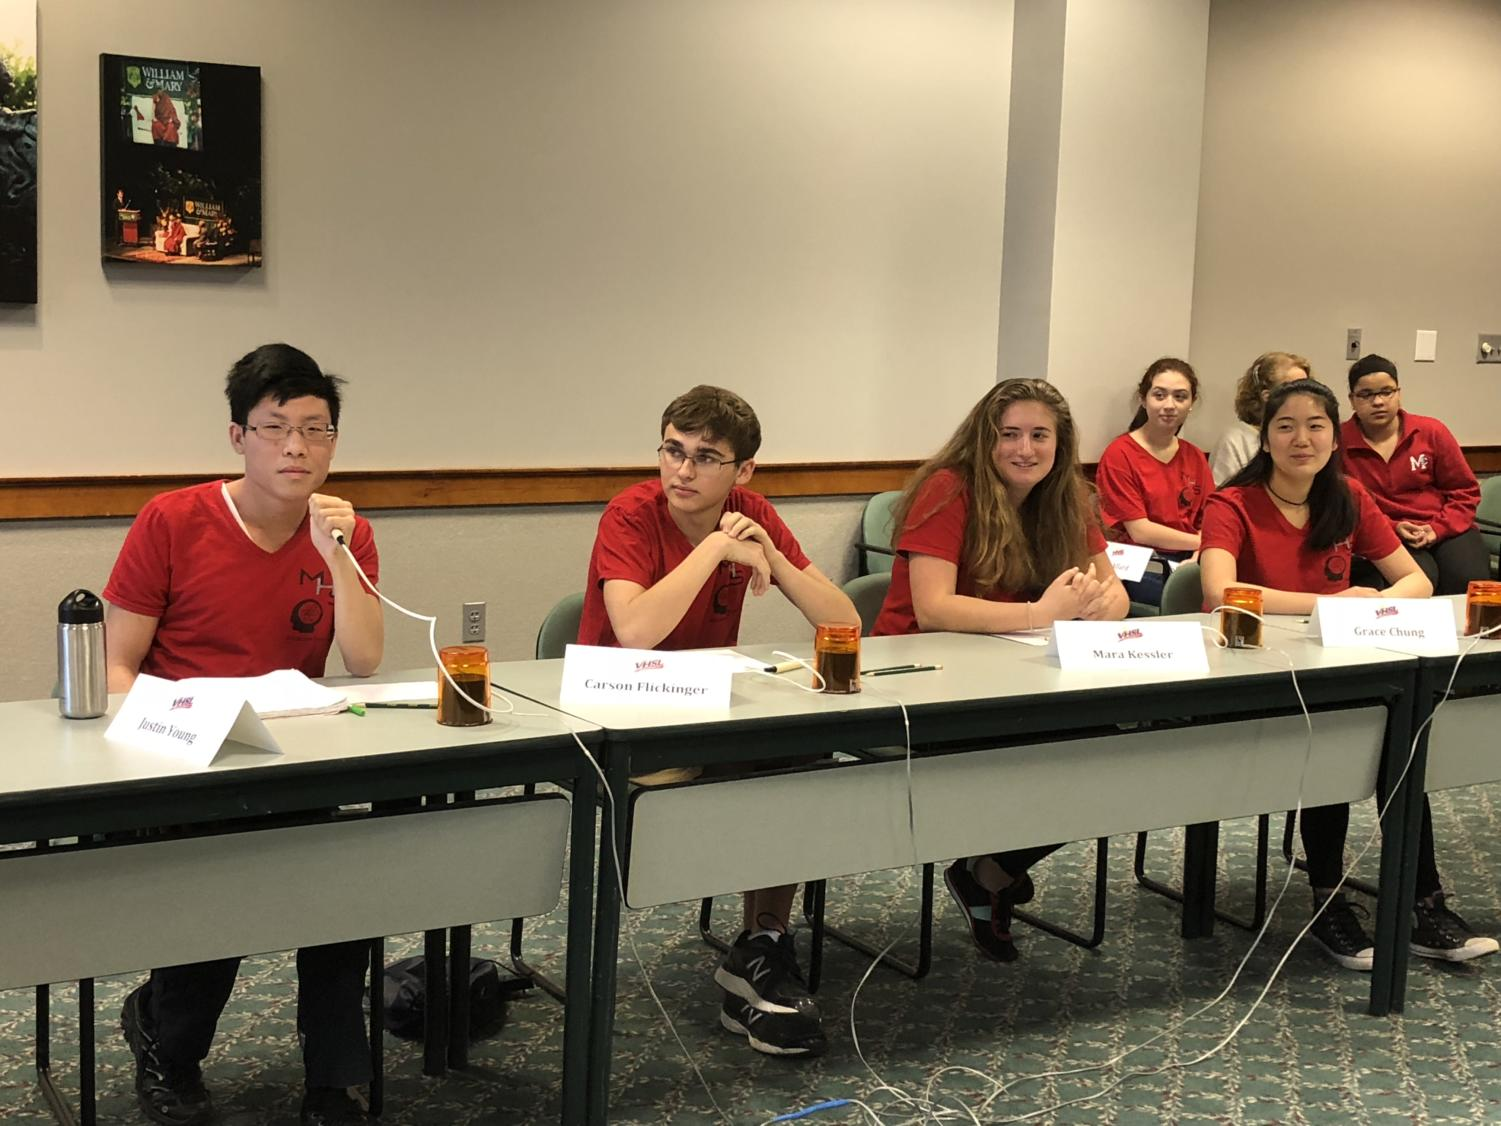 The Scholastic Bowl team is seen here in action. From left to right Justin Young (10),  Carson Flickinger (12), Mara Kessler(11) and Grace Chung(11). (Photo courtesy of Lindsay Benedict)